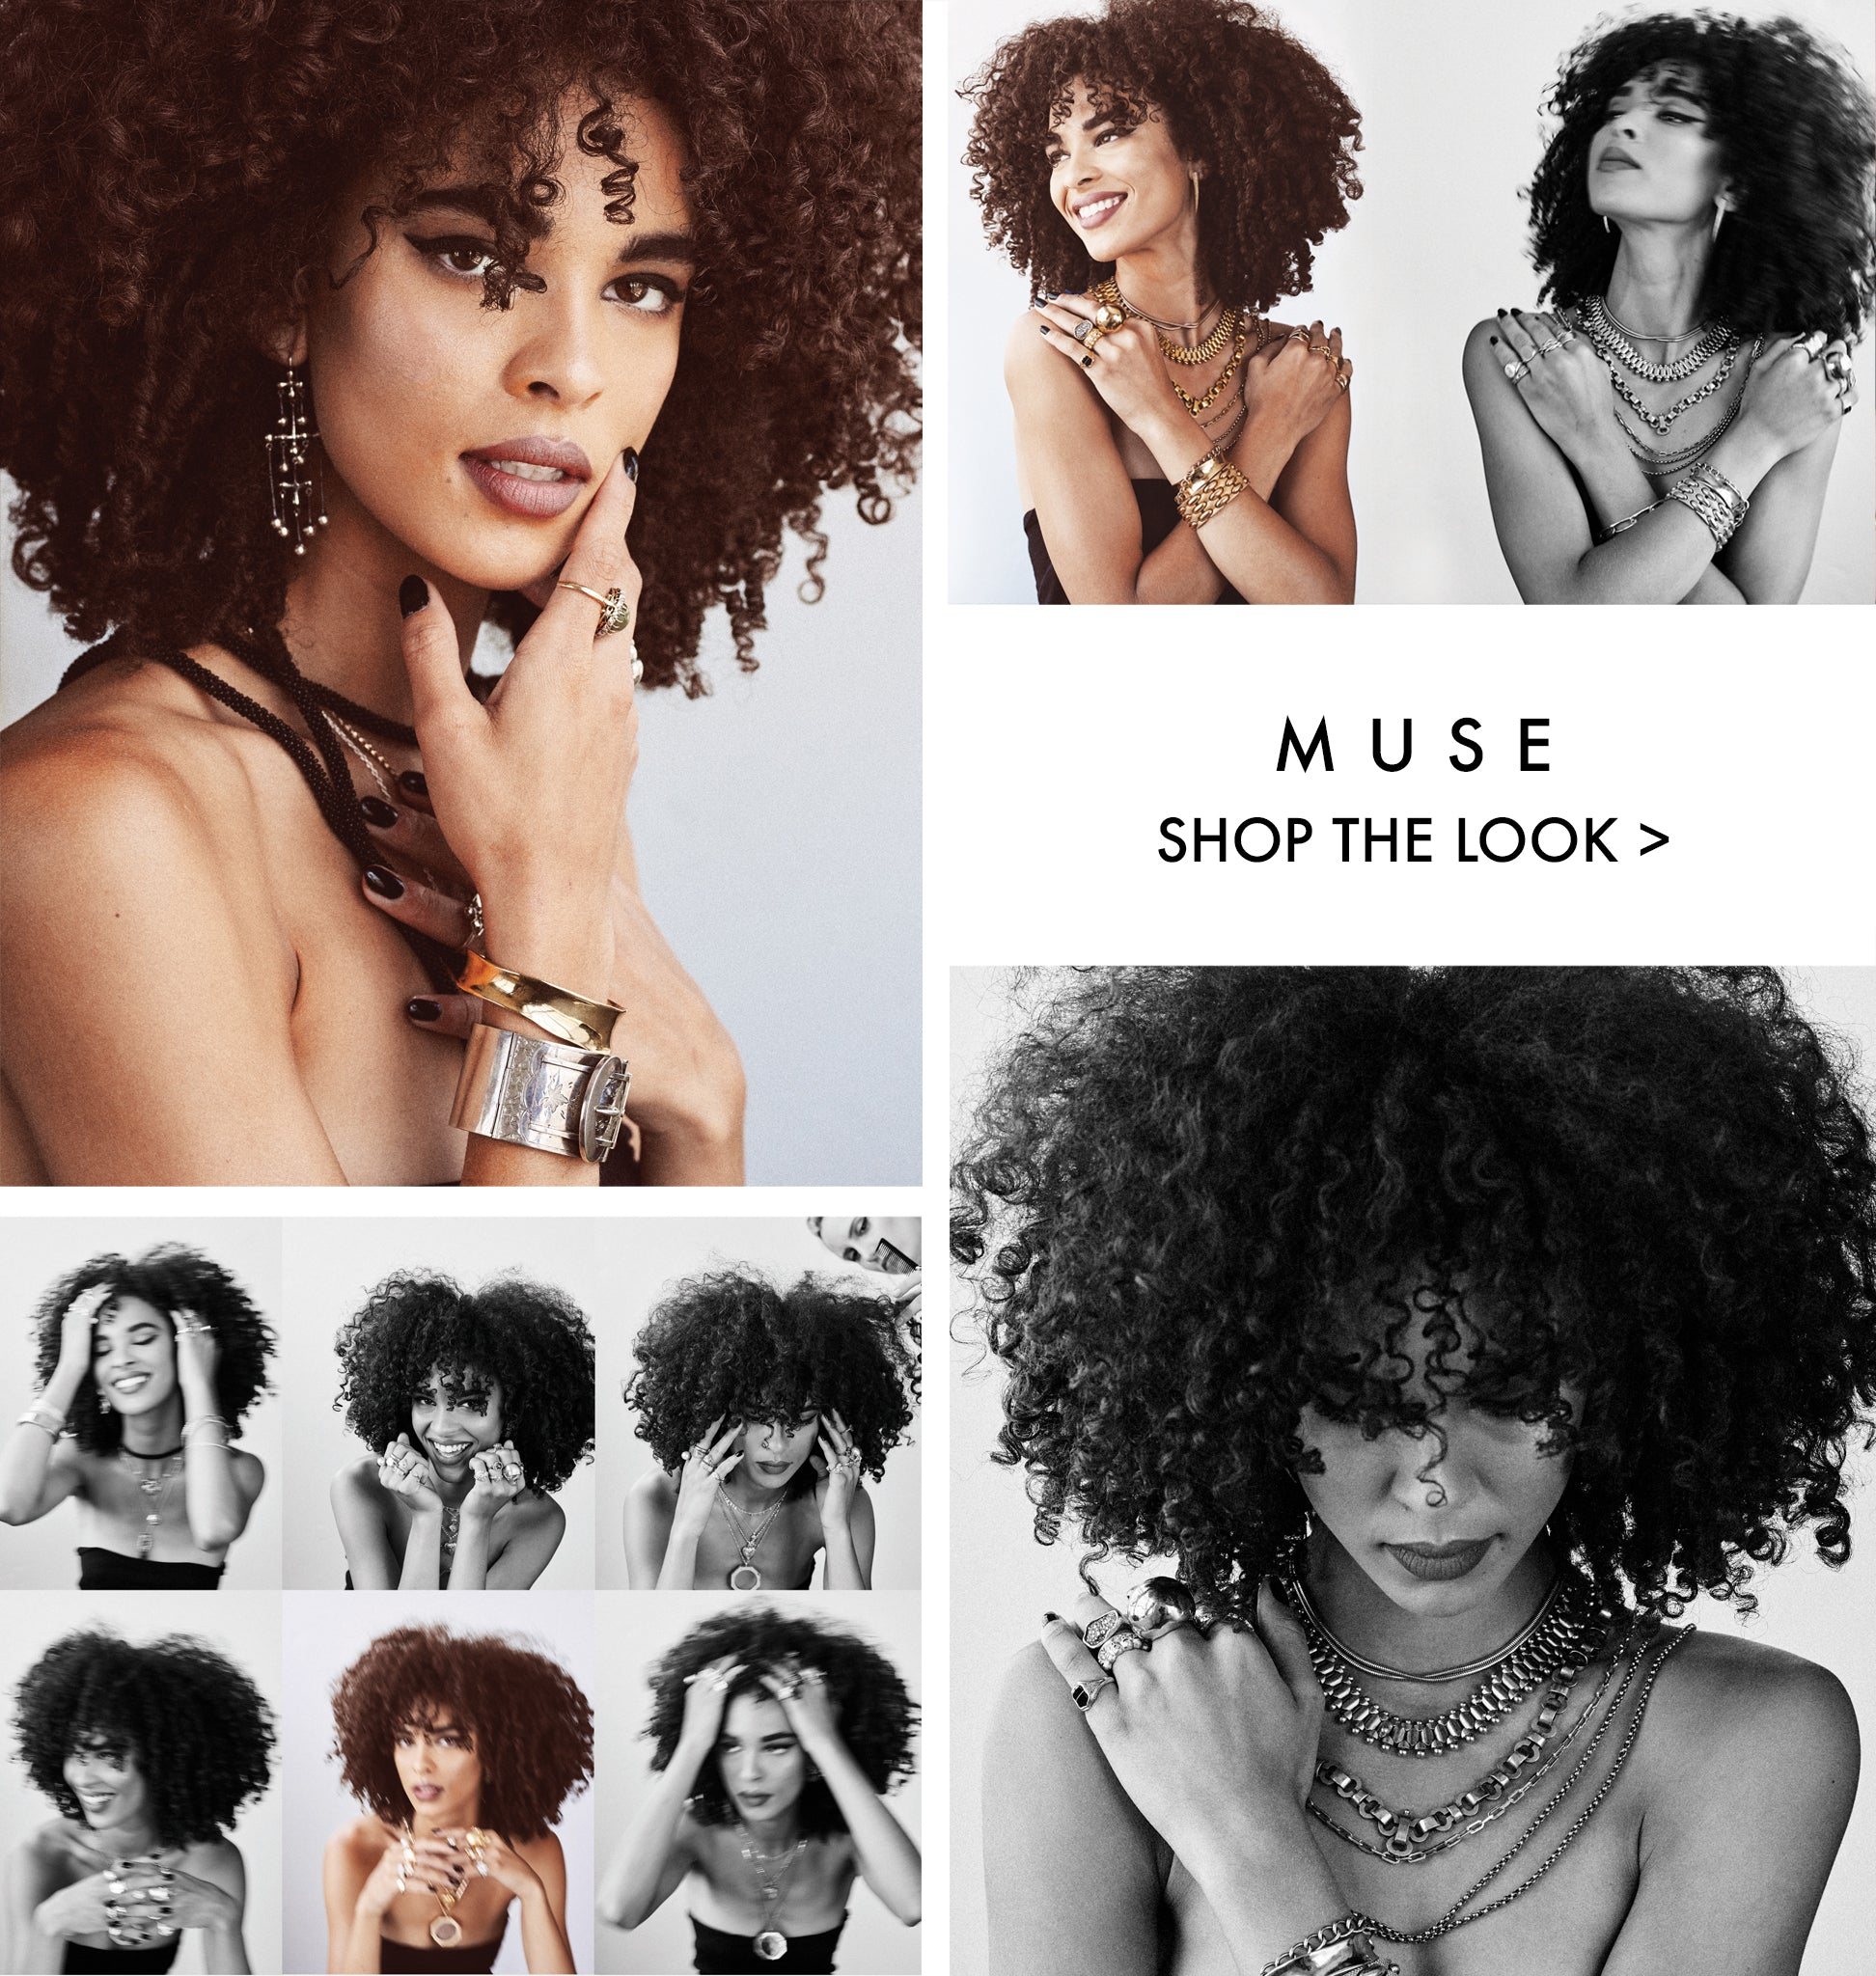 MUSE THE LOOKBOOK